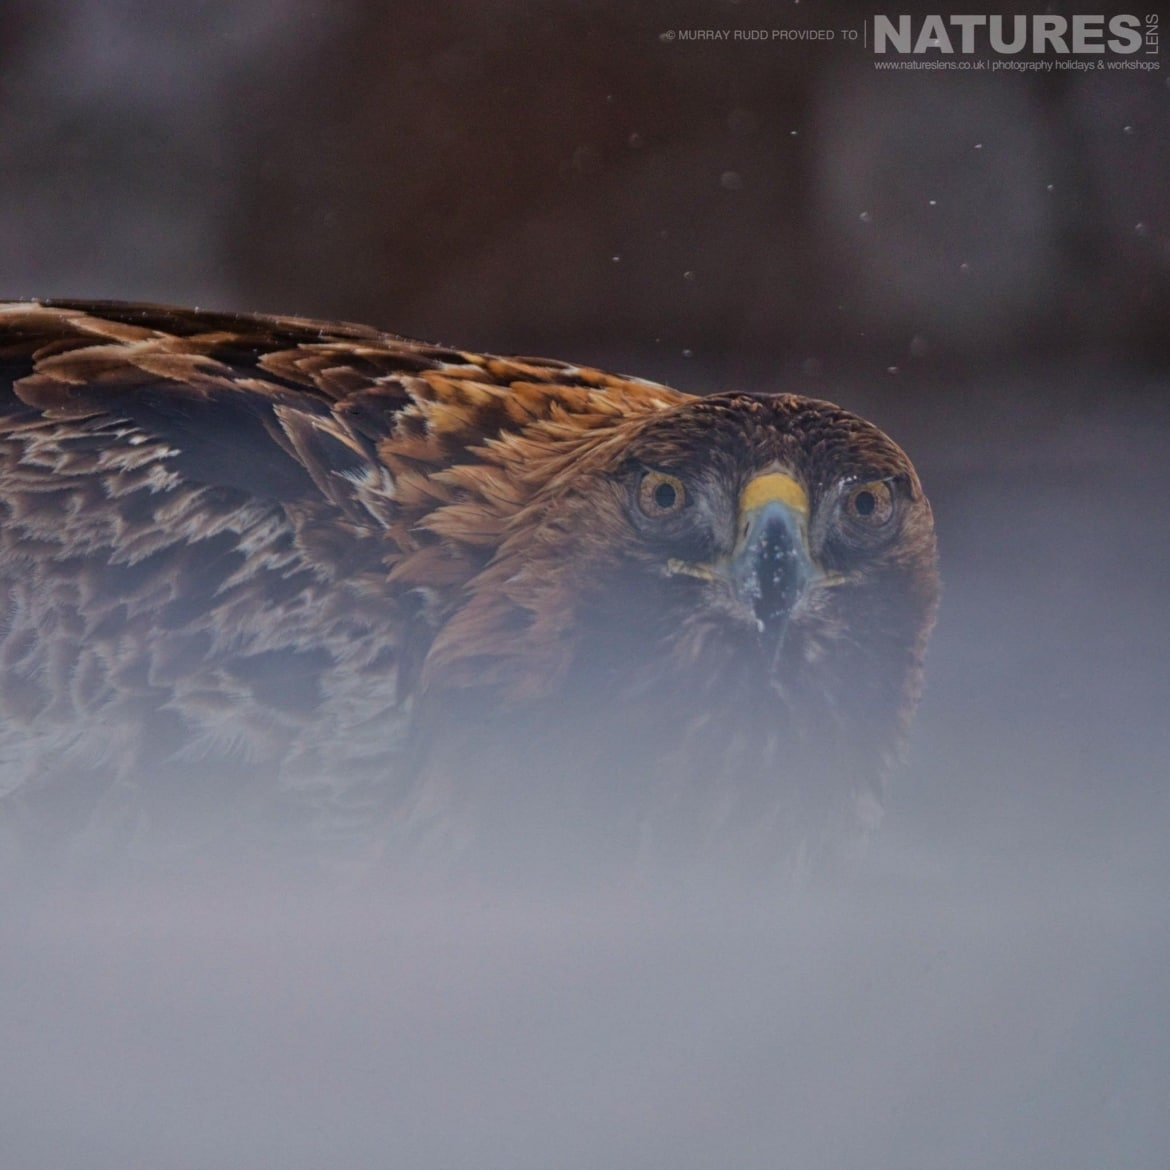 One Of The Golden Eagles Stares Directly At The Photographer   Image Captured During The NaturesLens Golden Eagles Of The Swedish Winter Photography Holiday